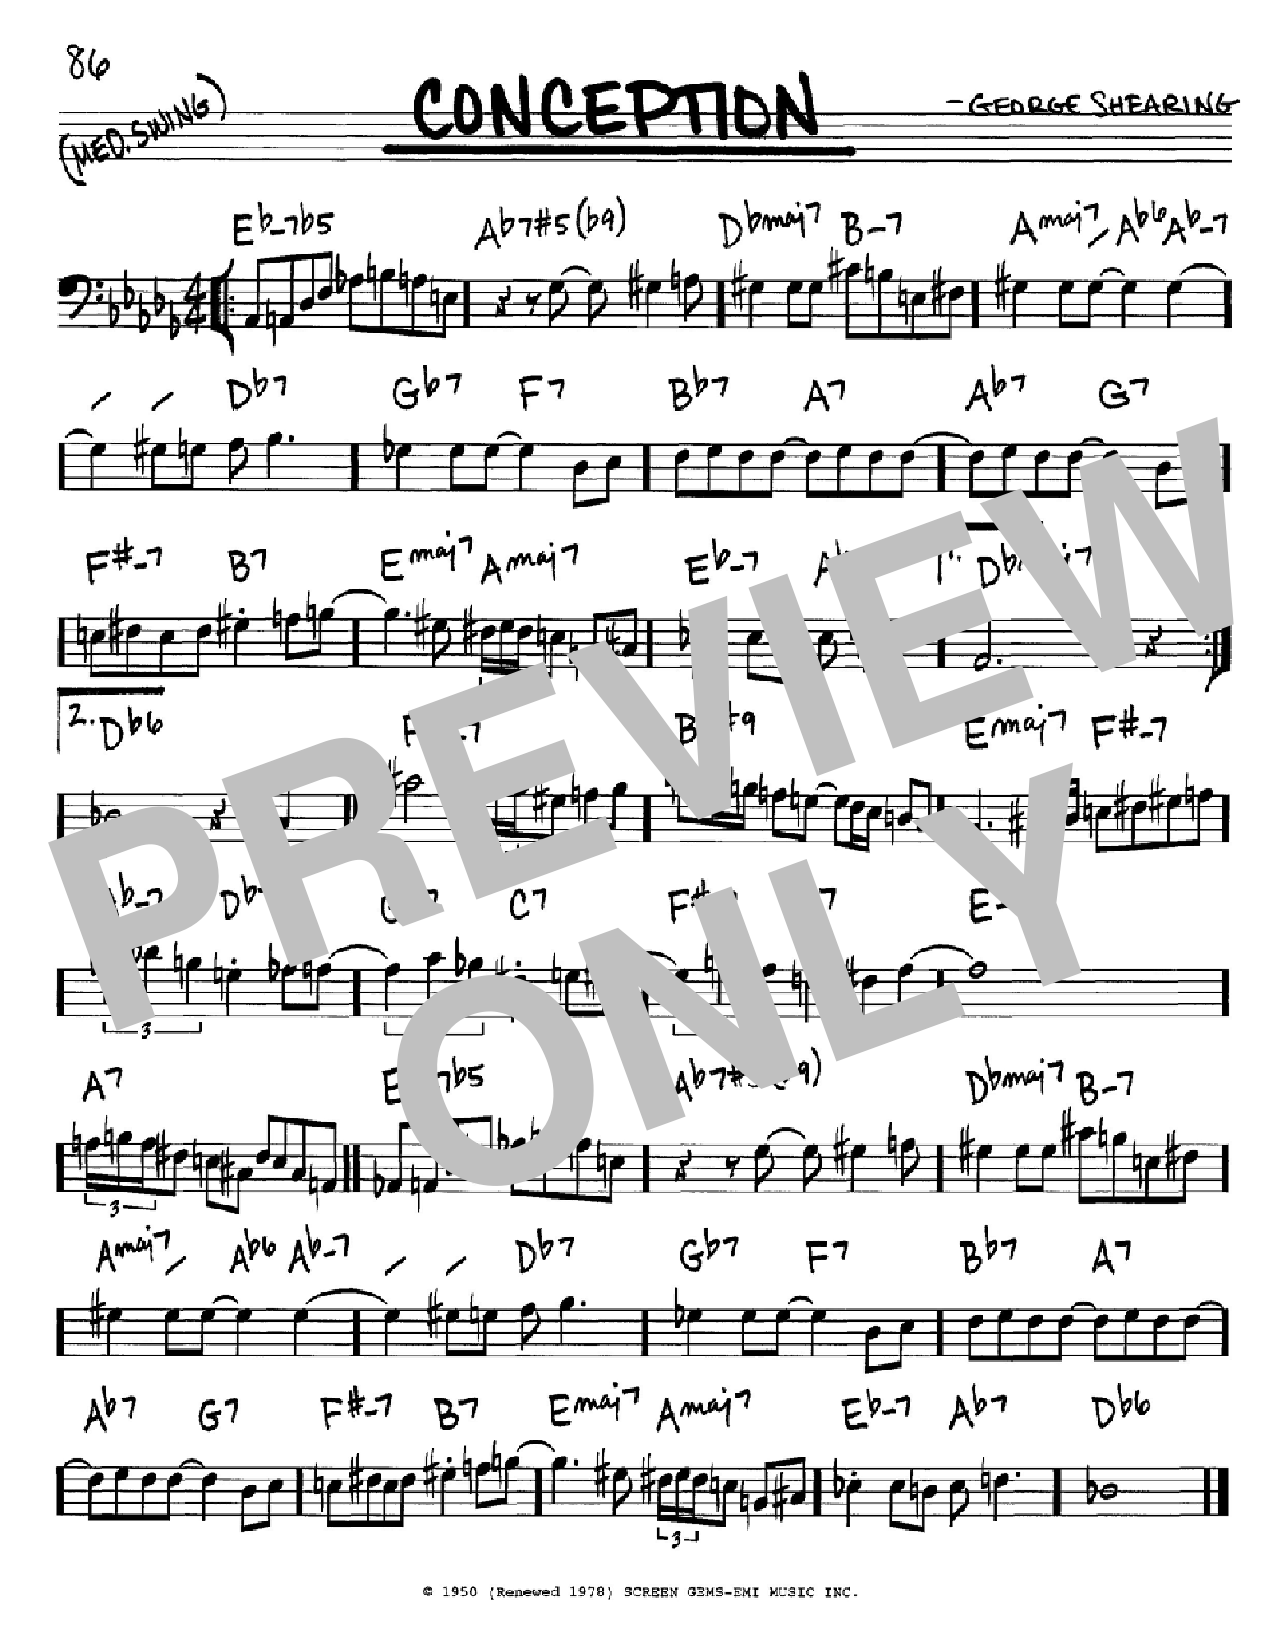 Conception Sheet Music